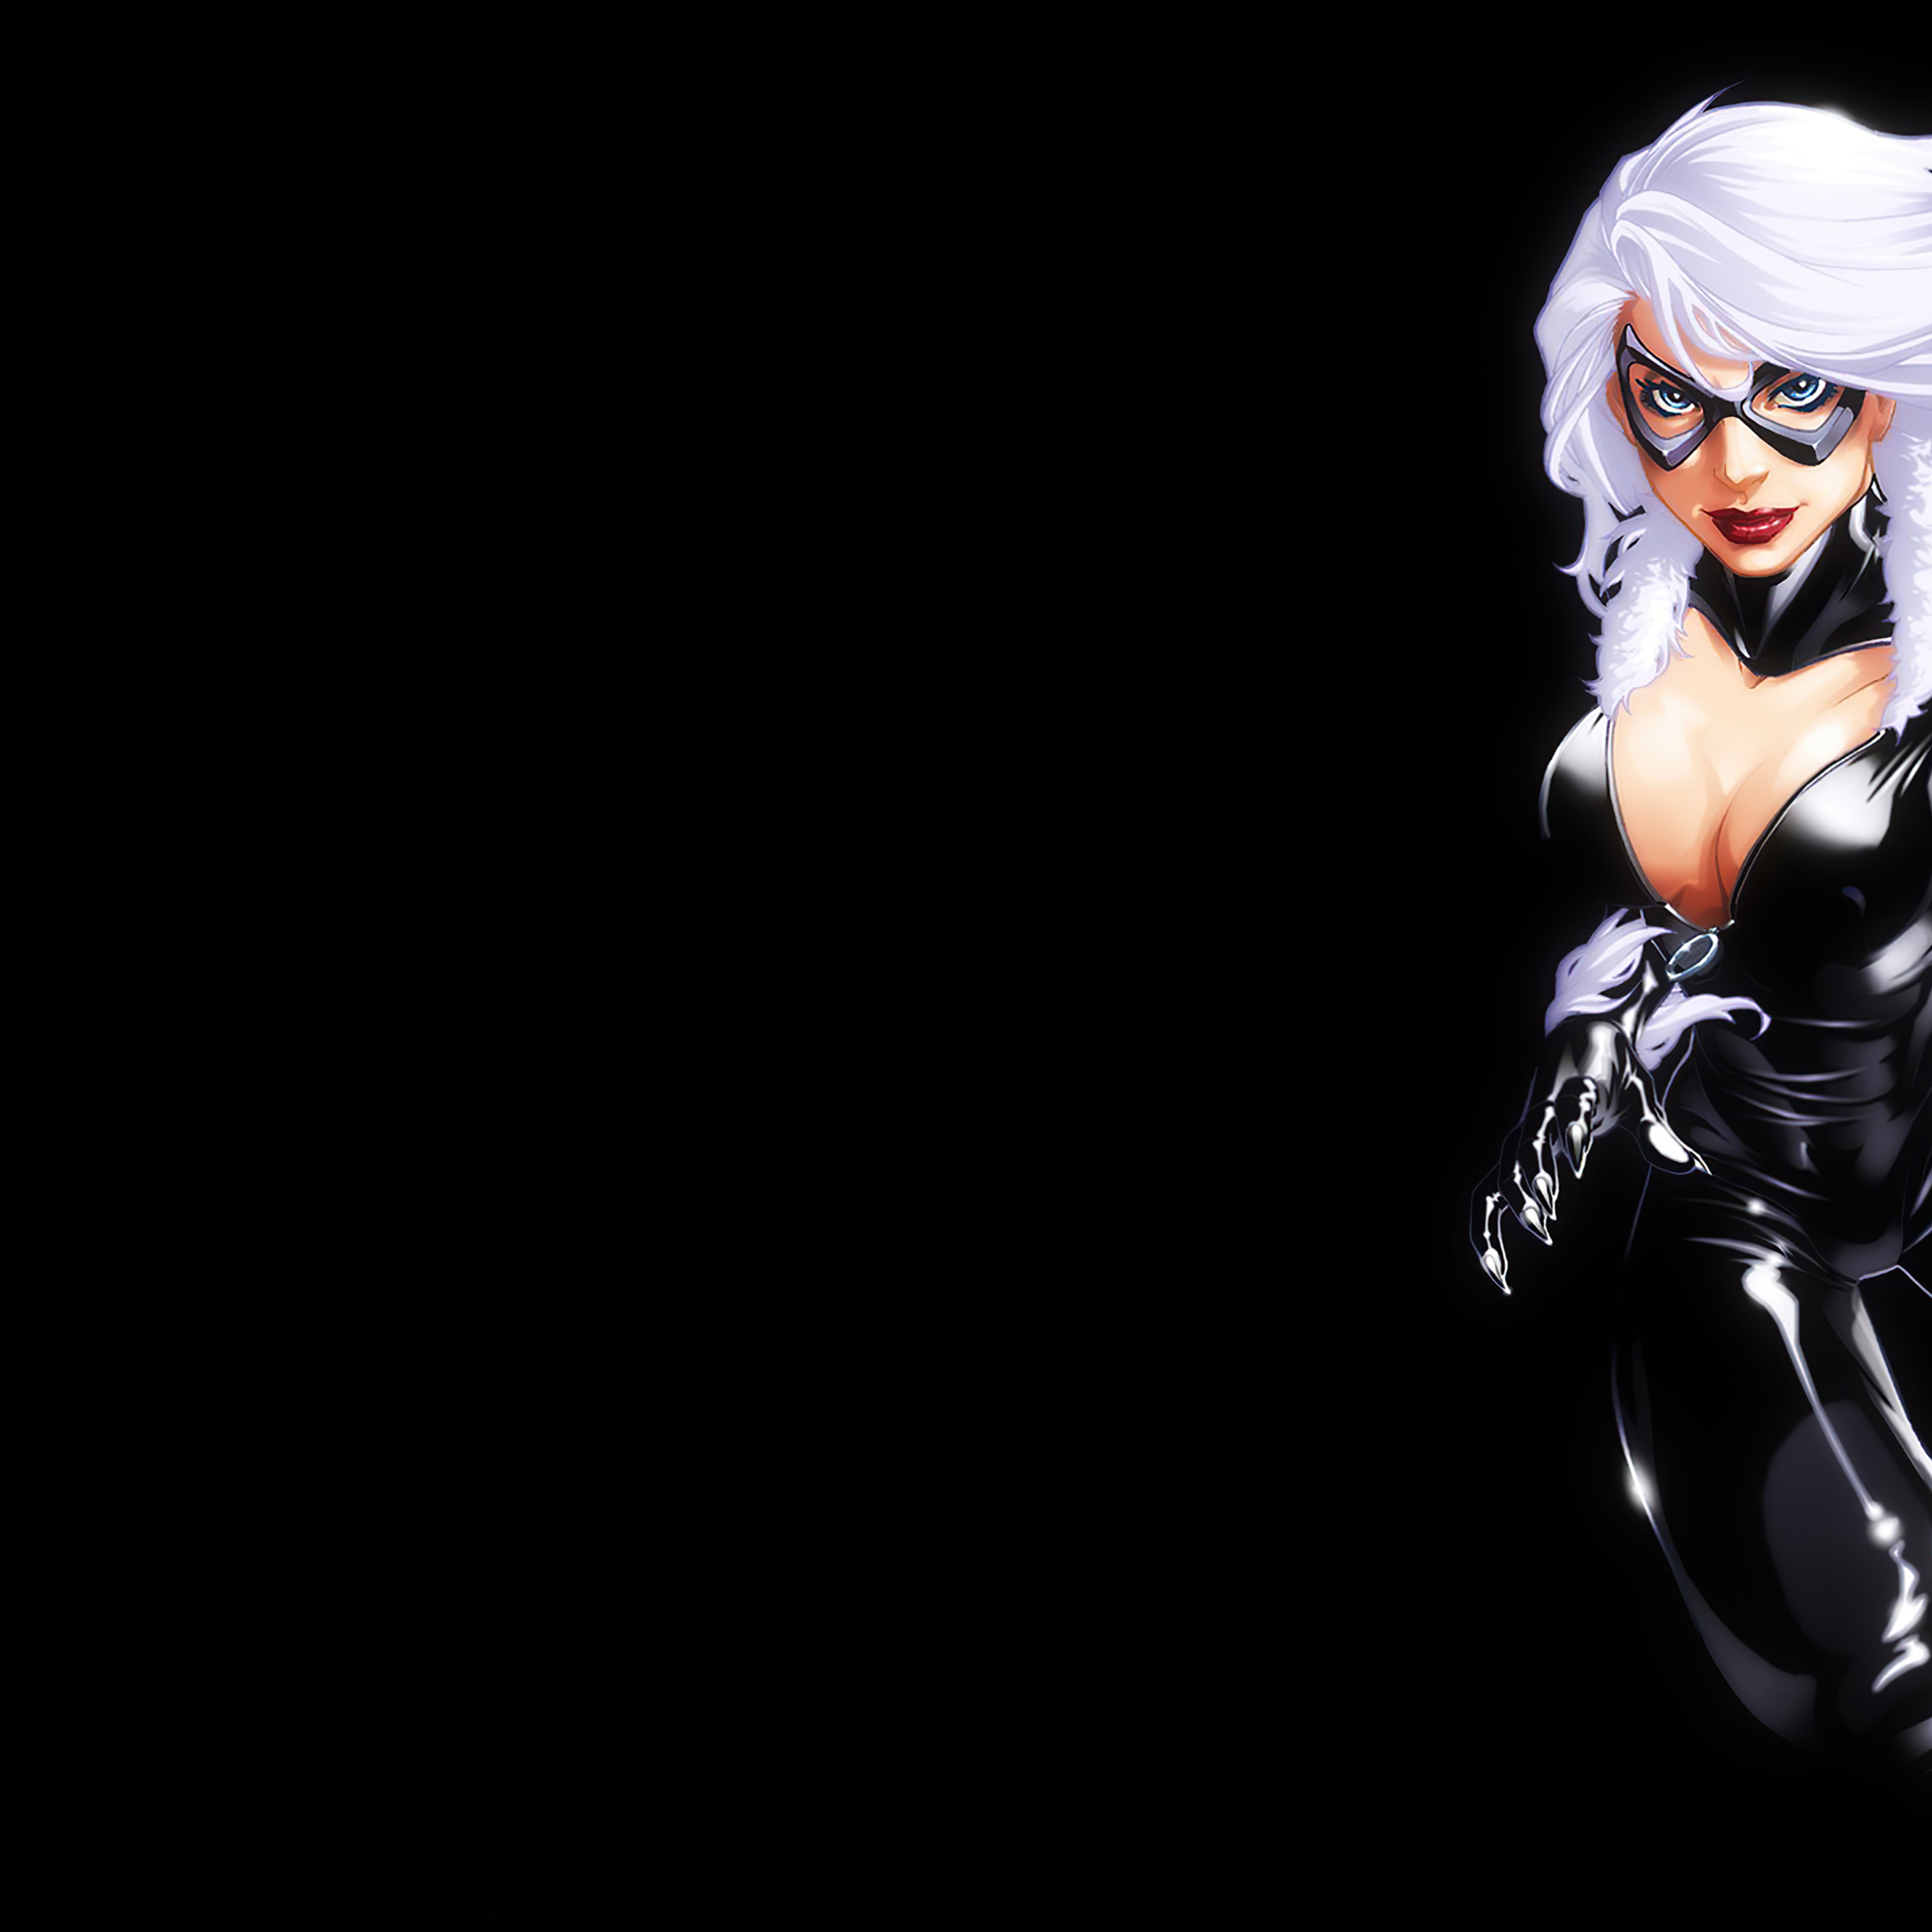 2932x2932 Marvel Girl Black Cat 4k Ipad Pro Retina Display Hd 4k Wallpapers Images Backgrounds Photos And Pictures